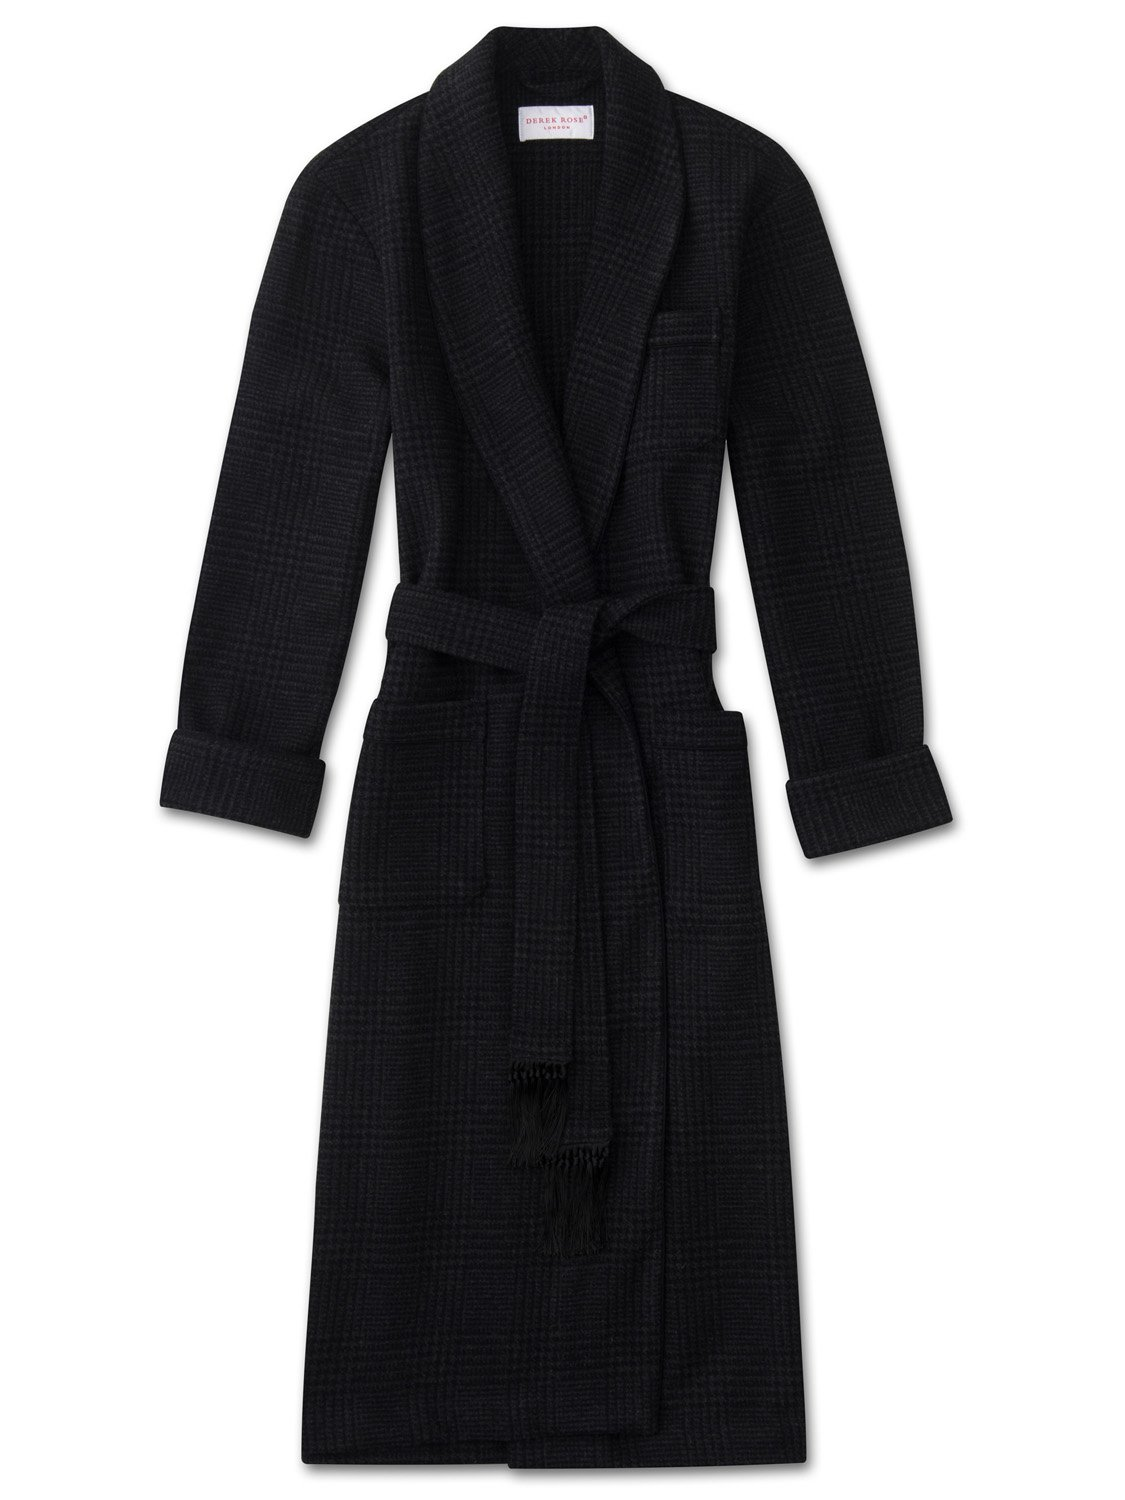 Men's Tasseled Belt Dressing Gown Blandford Merino Cashmere Check Charcoal